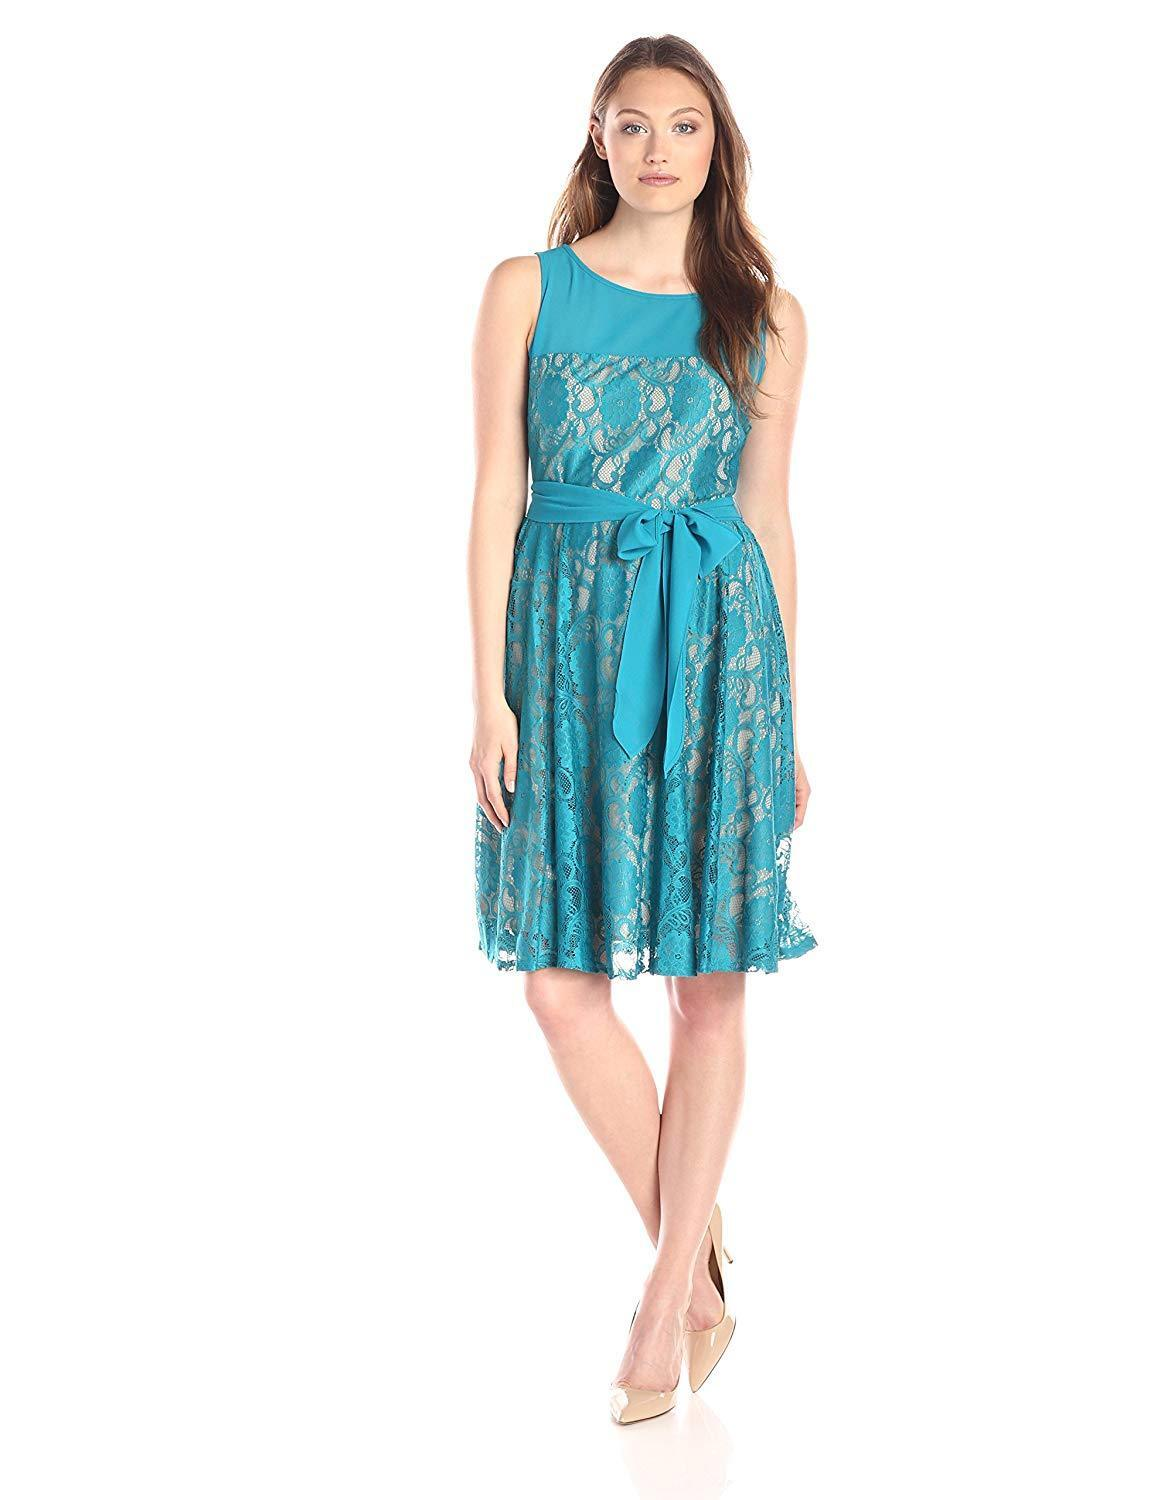 Julian Taylor Women's Lagoon Green Sleeveless Lace Dress with Tie - Size 10